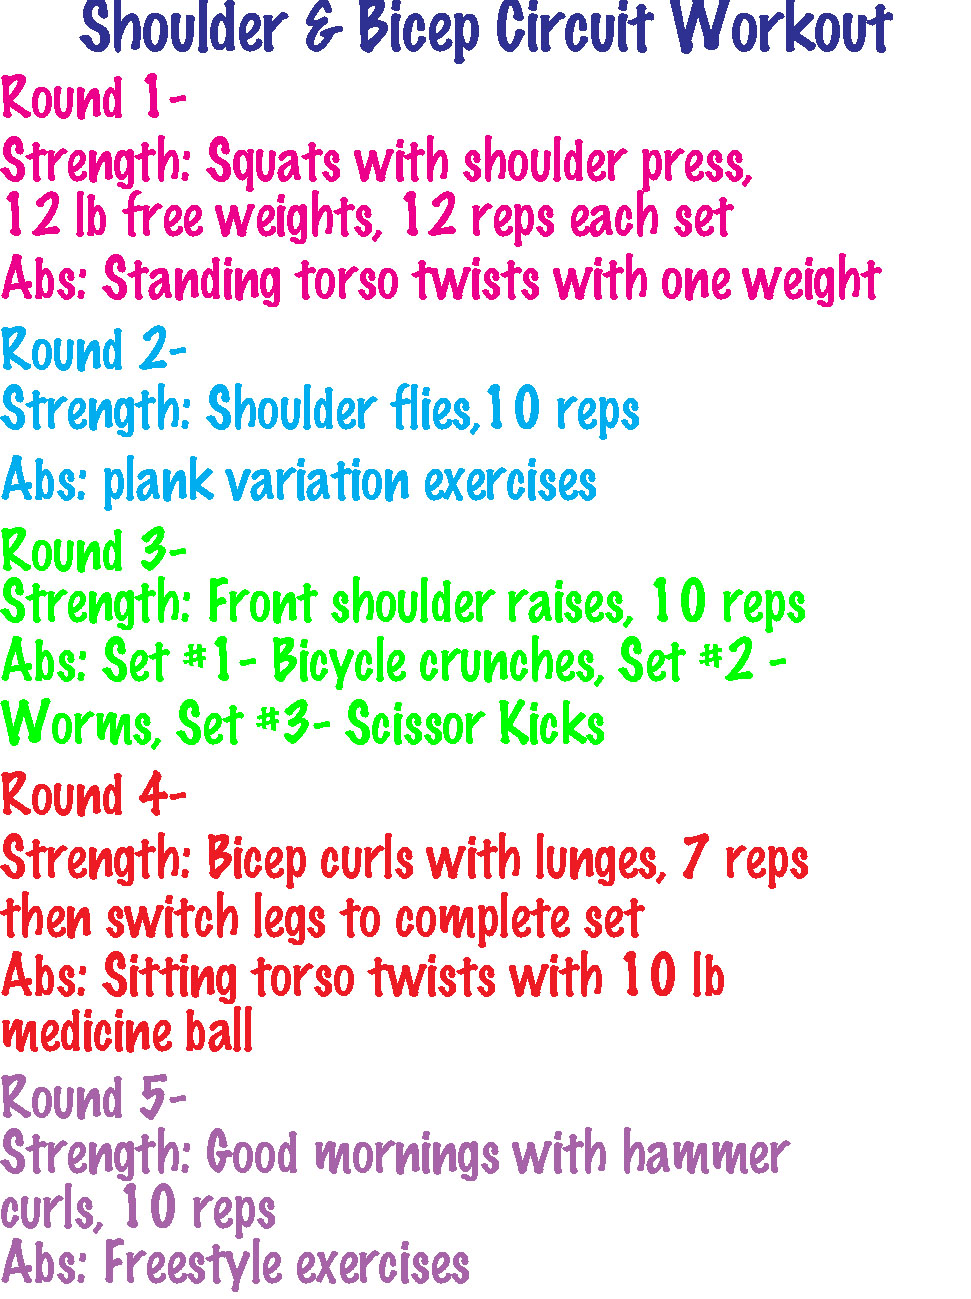 A Few of This Week's Workouts